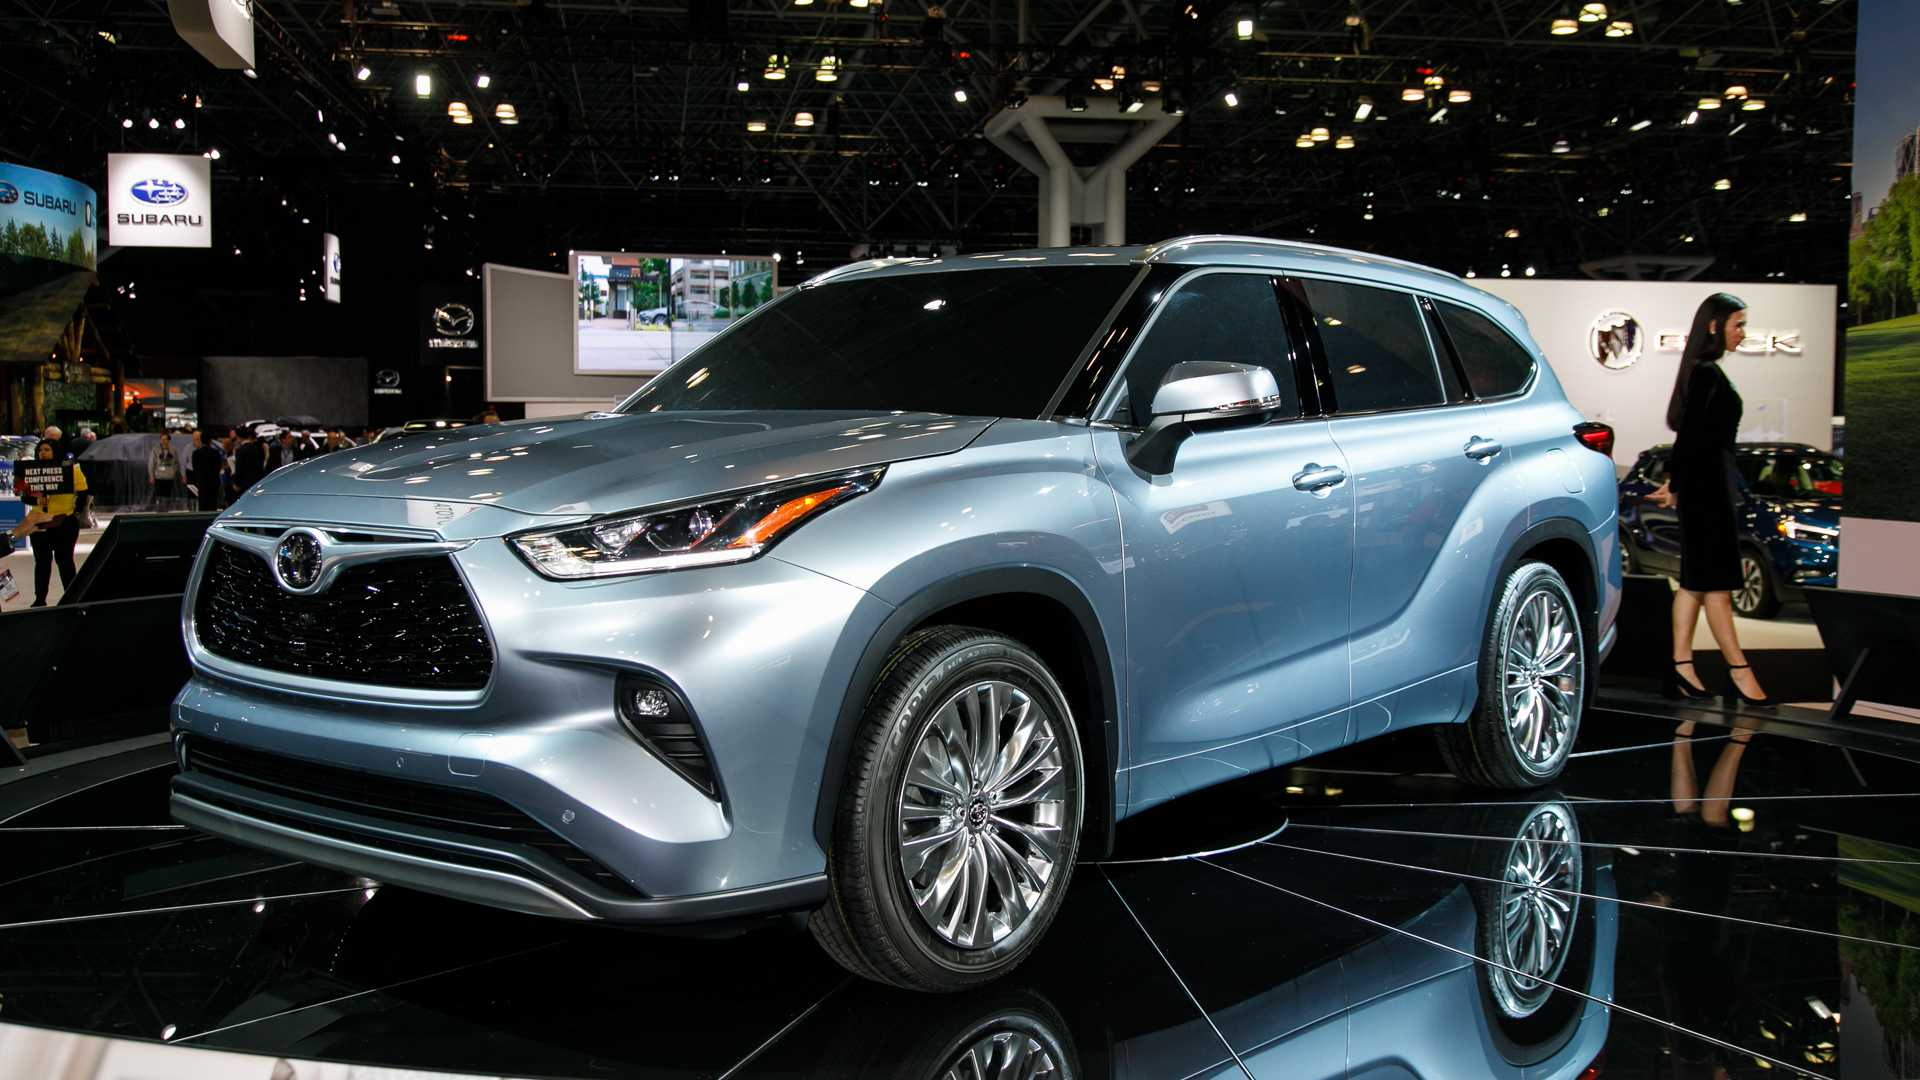 48 New Toyota Kluger 2020 Model Pricing